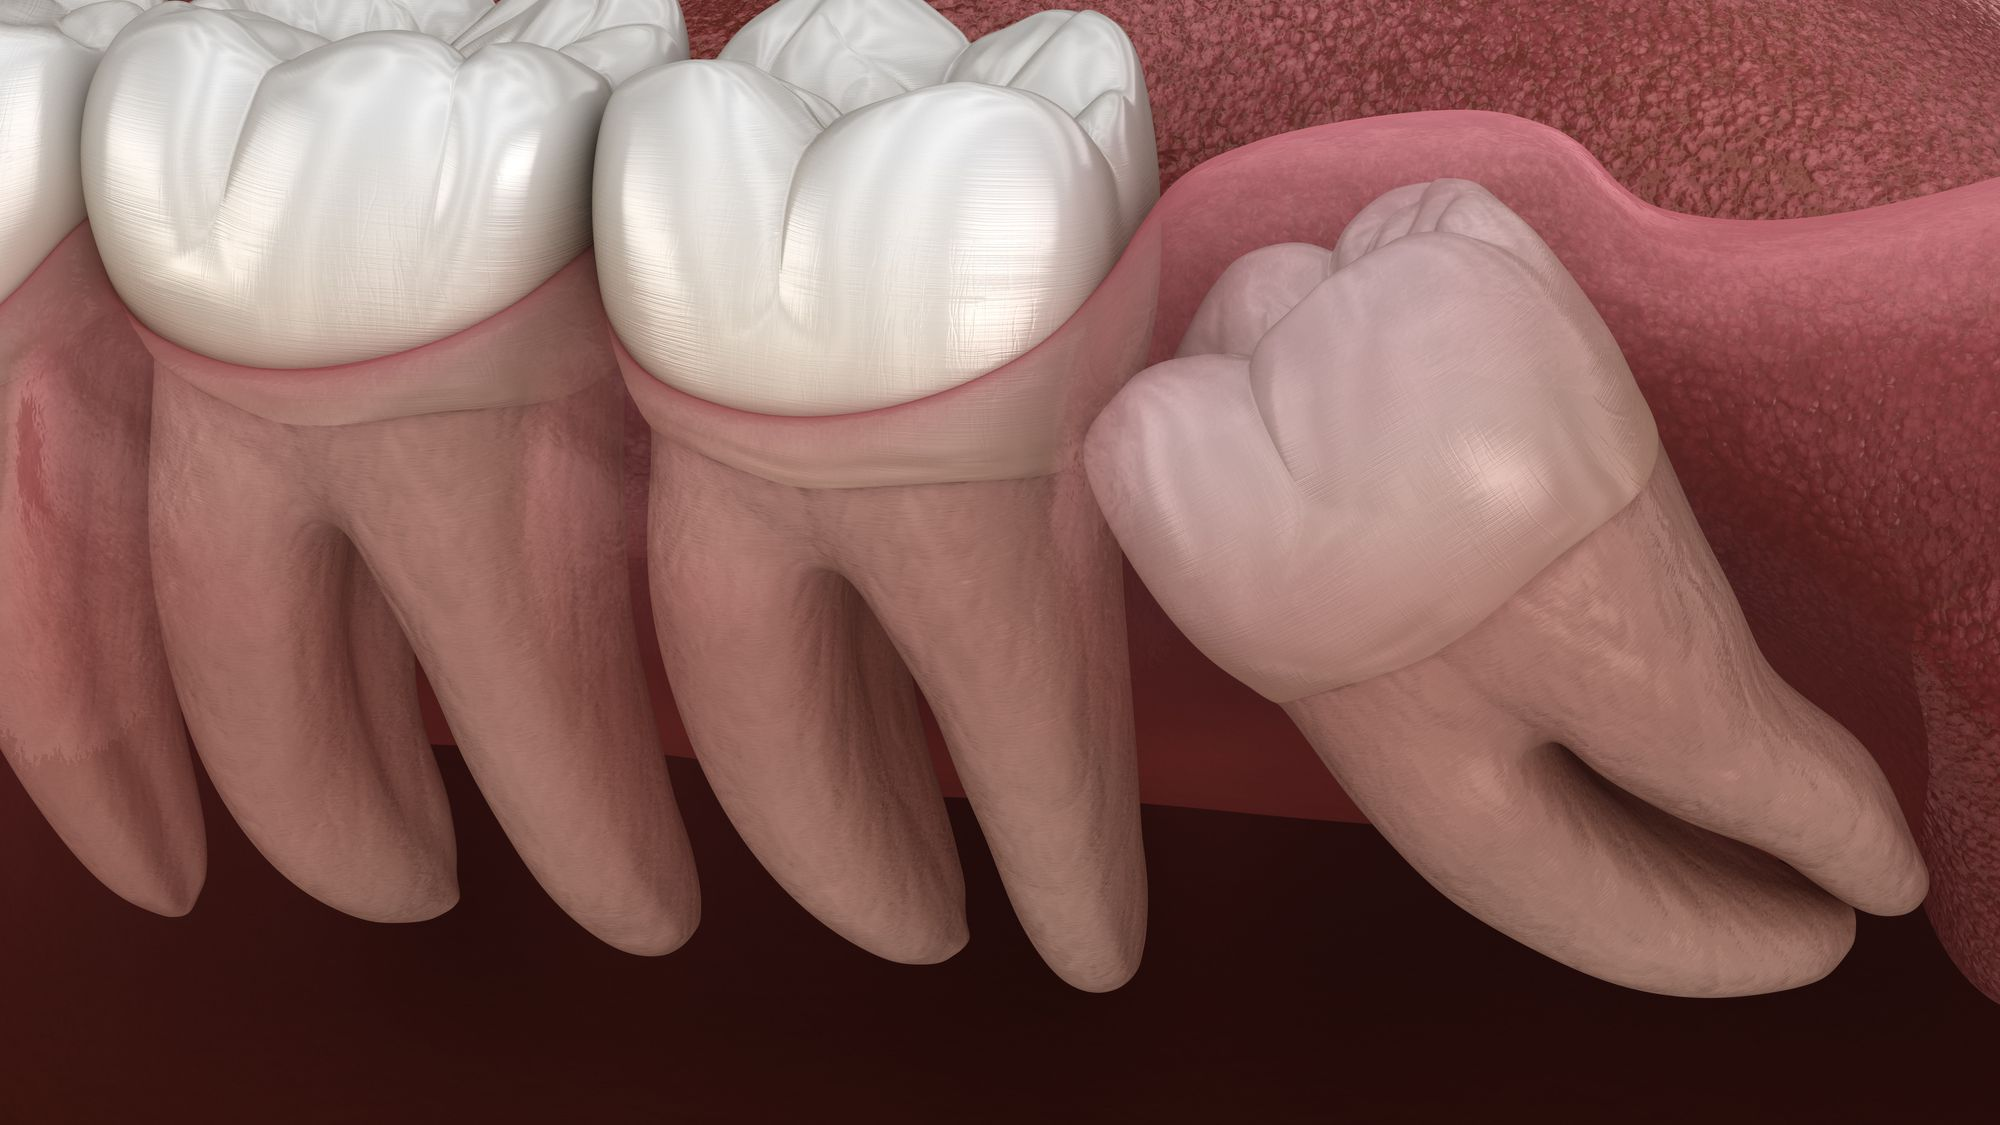 Wisdom Teeth Removal Surgery Preparation And Recovery